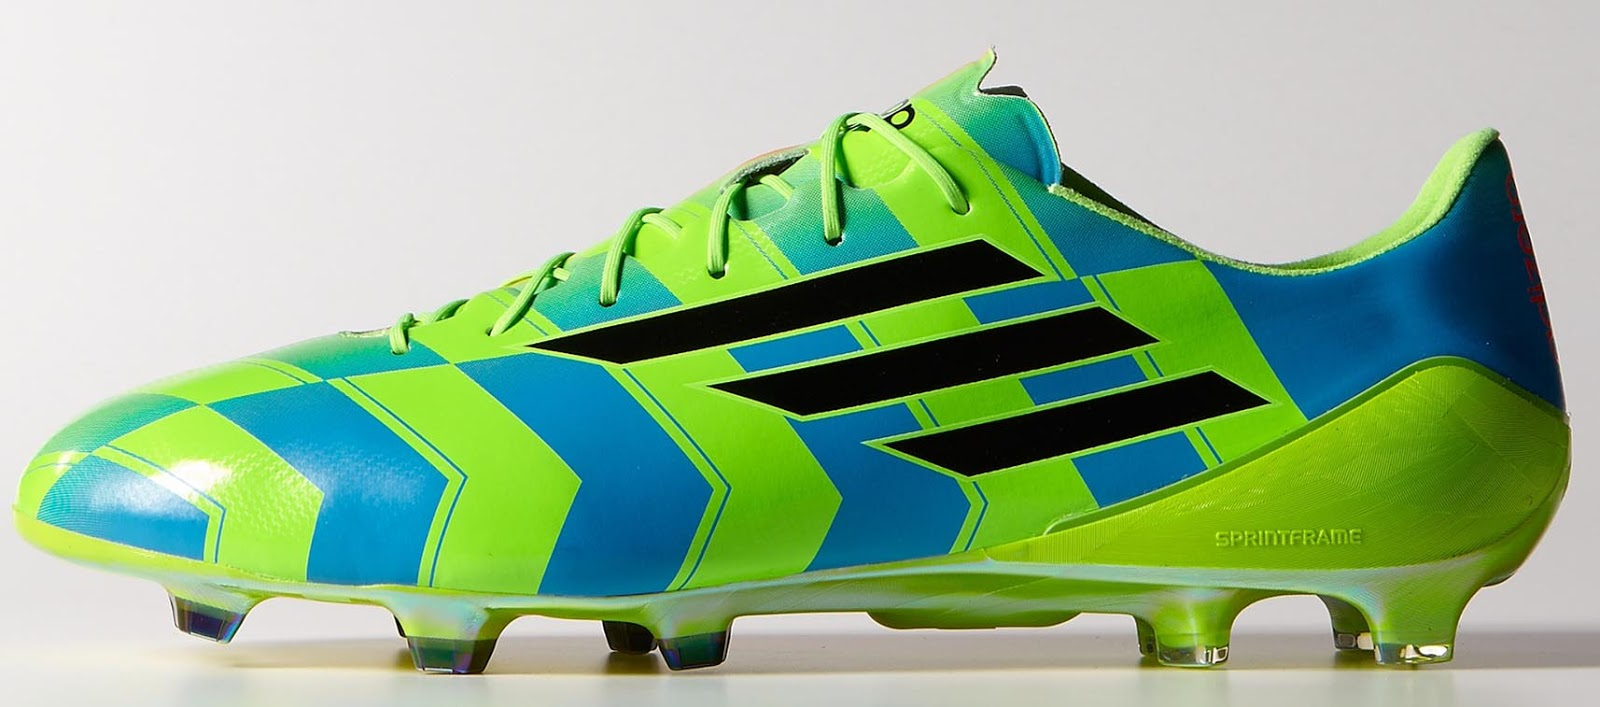 footy news colorful adidas f50 adizero crazylight 14 15 boot. Black Bedroom Furniture Sets. Home Design Ideas